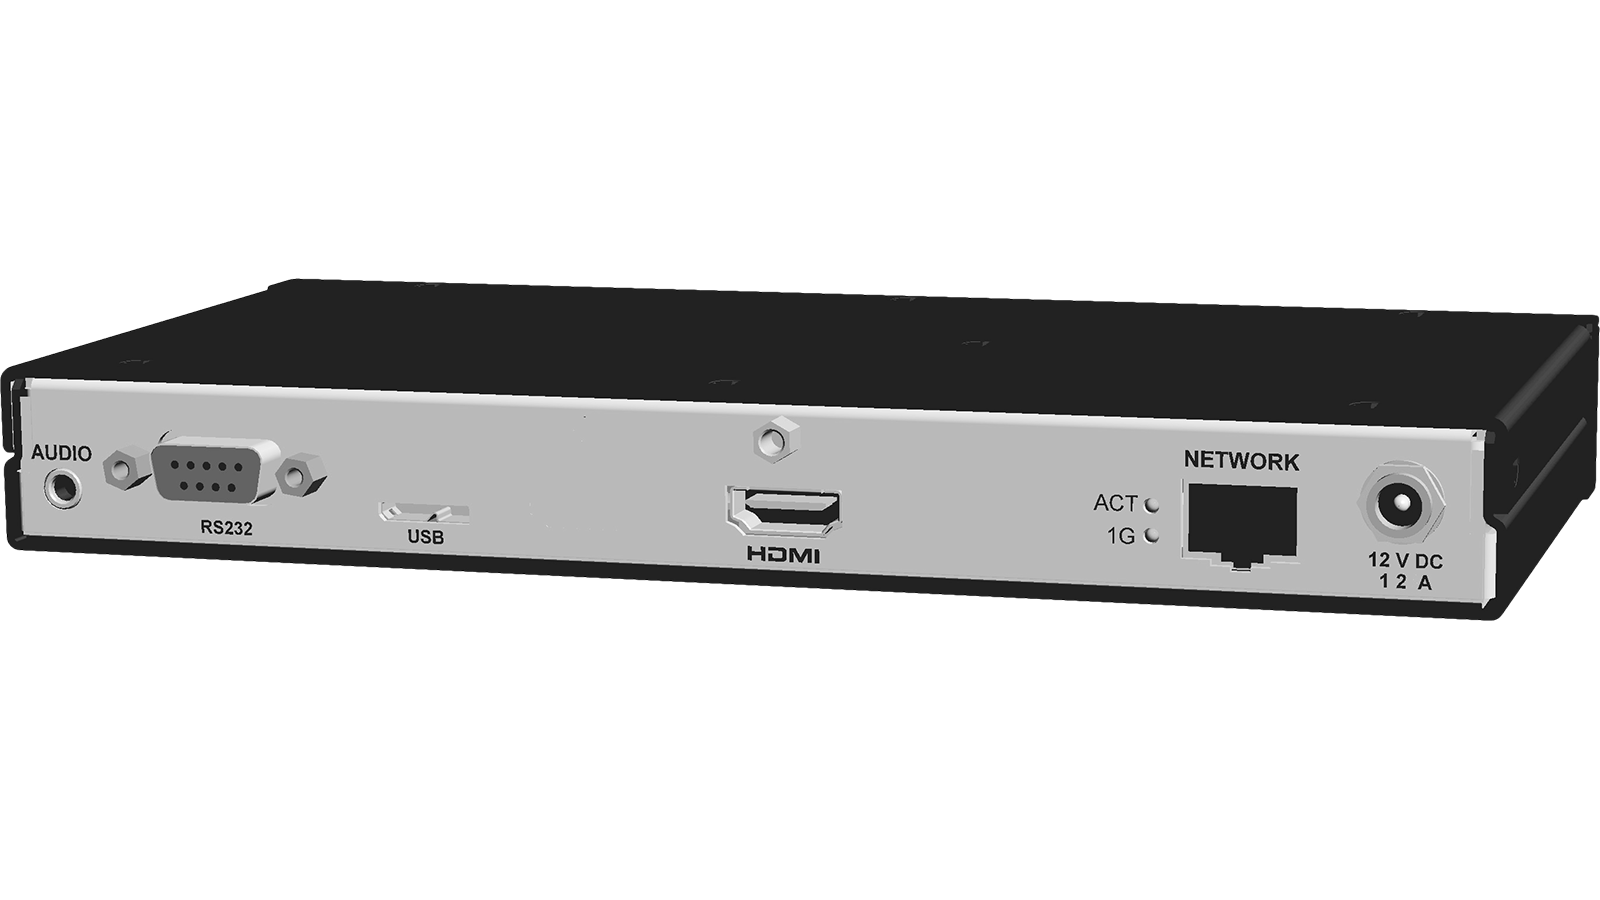 D2000 Series Decoder: Back Panel